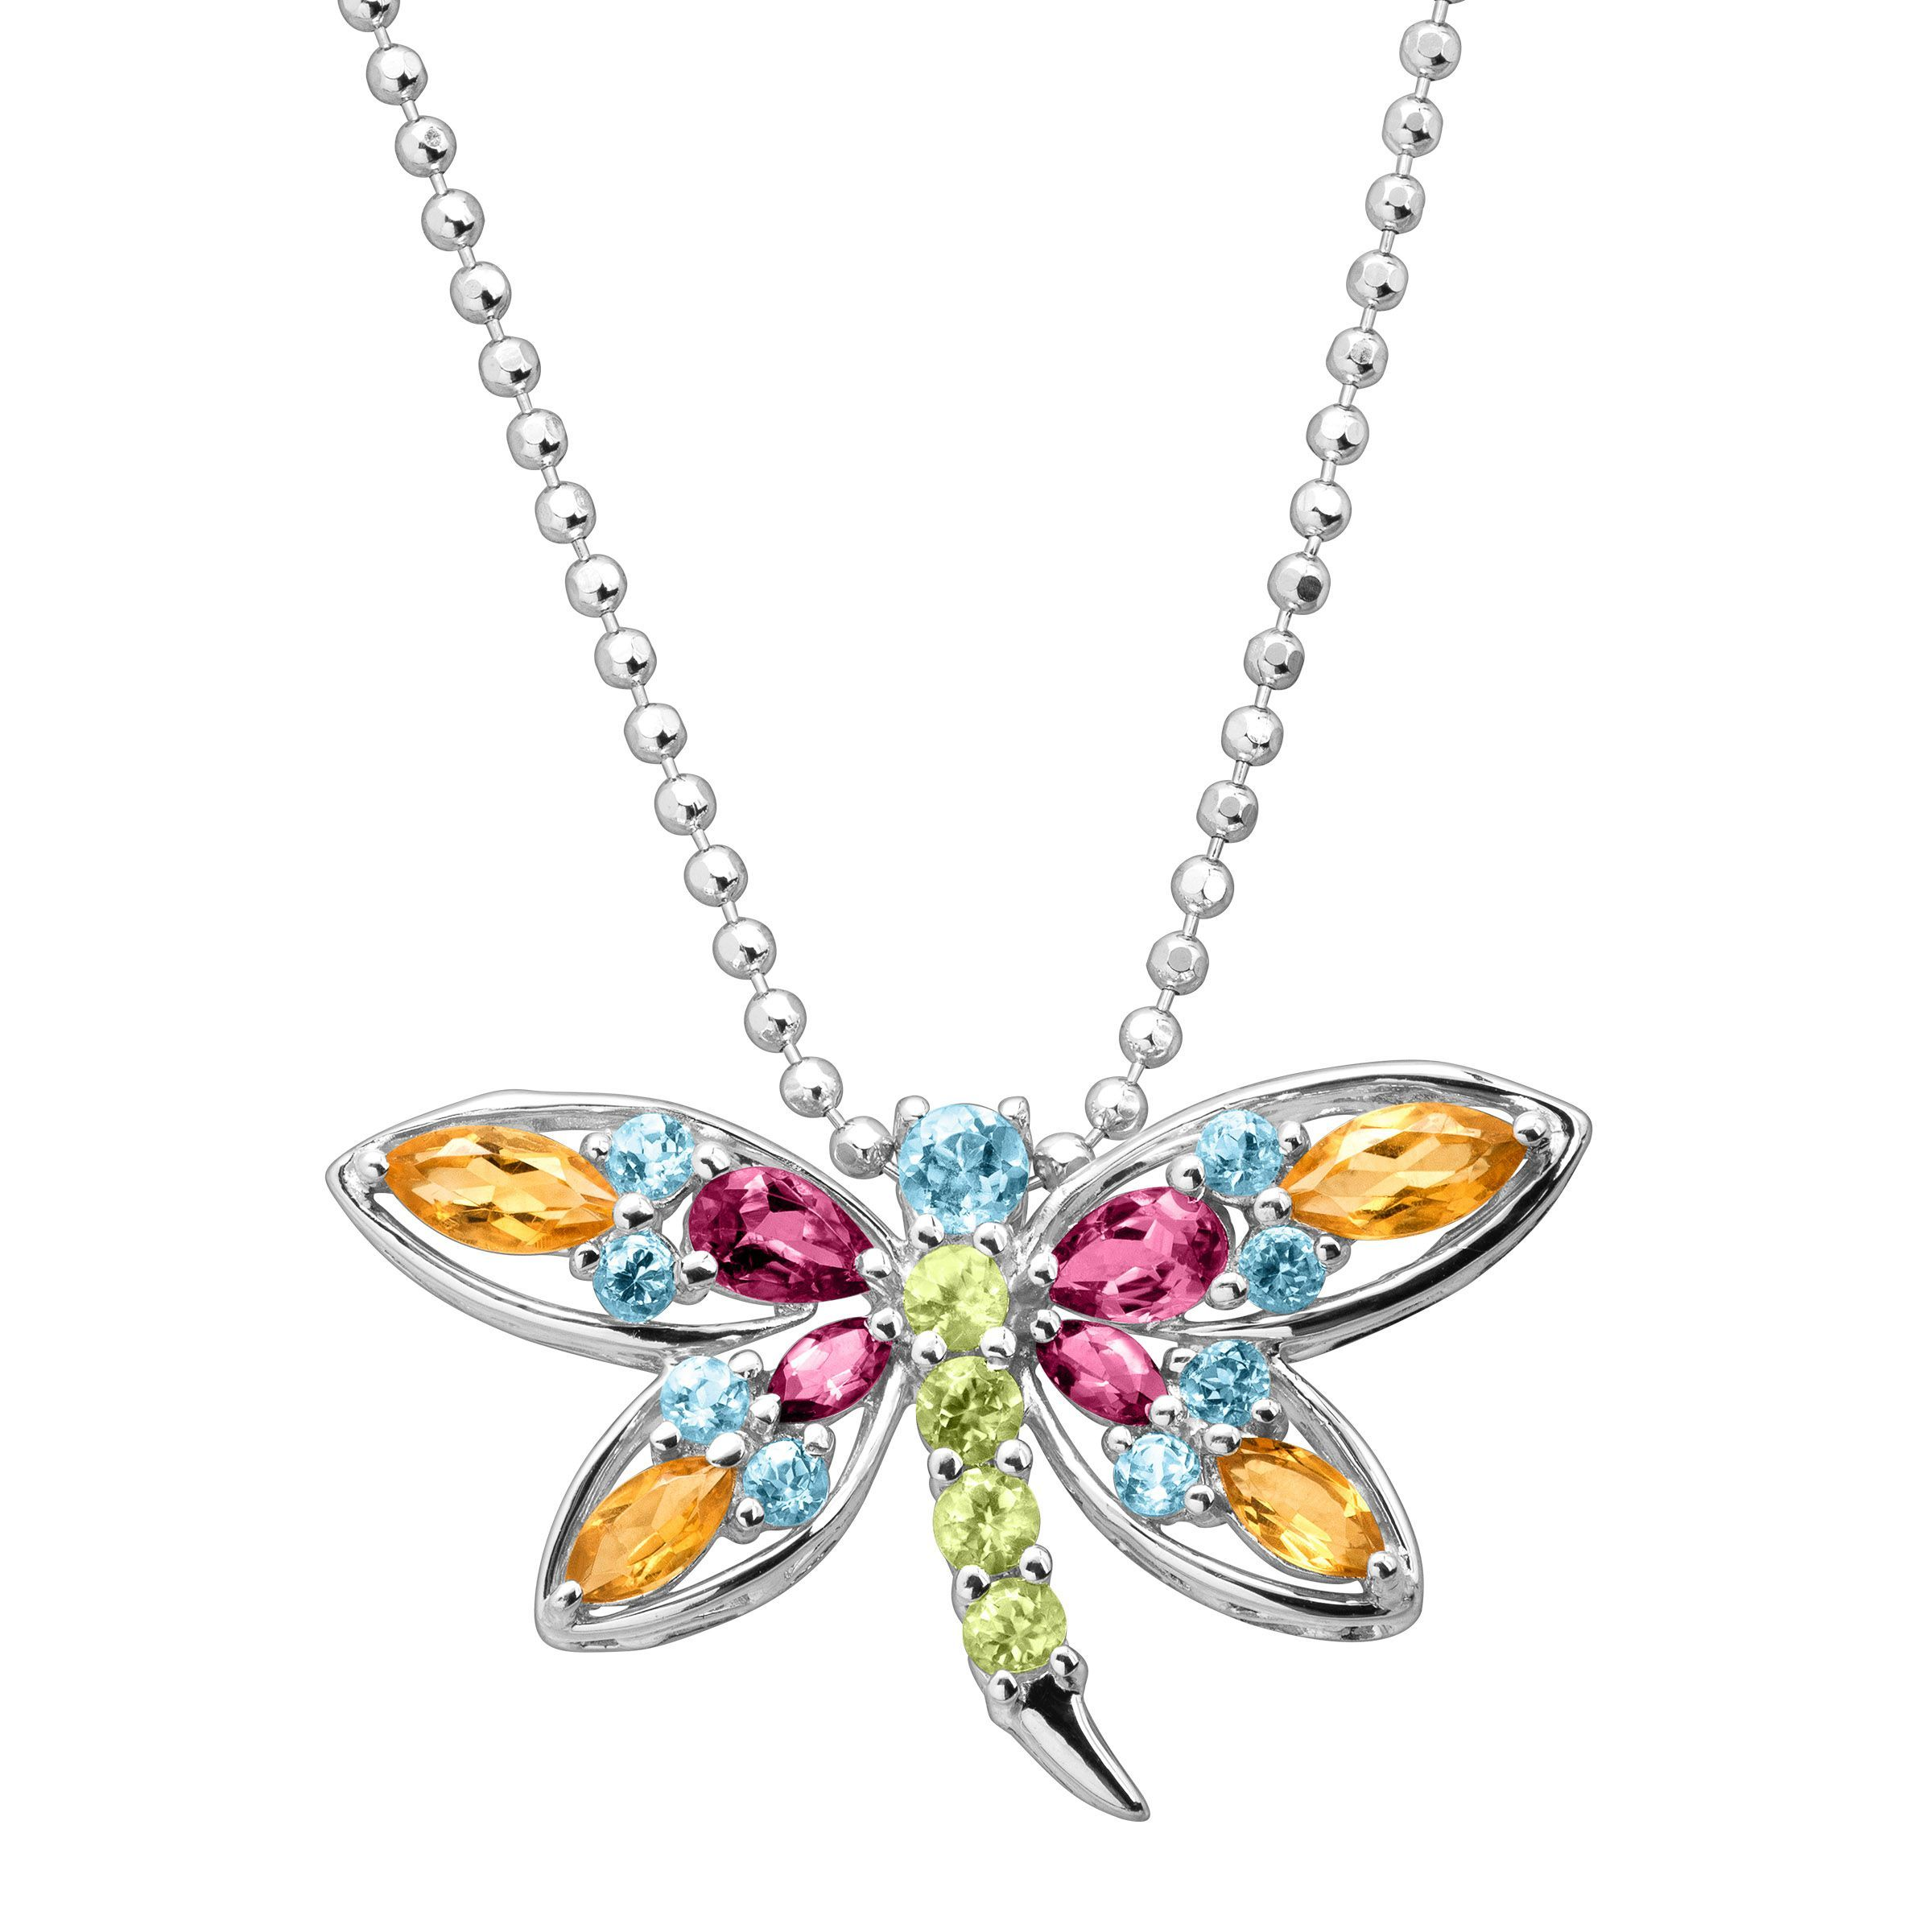 necklace john dragonfly pendant at bartlett lewis estella silver